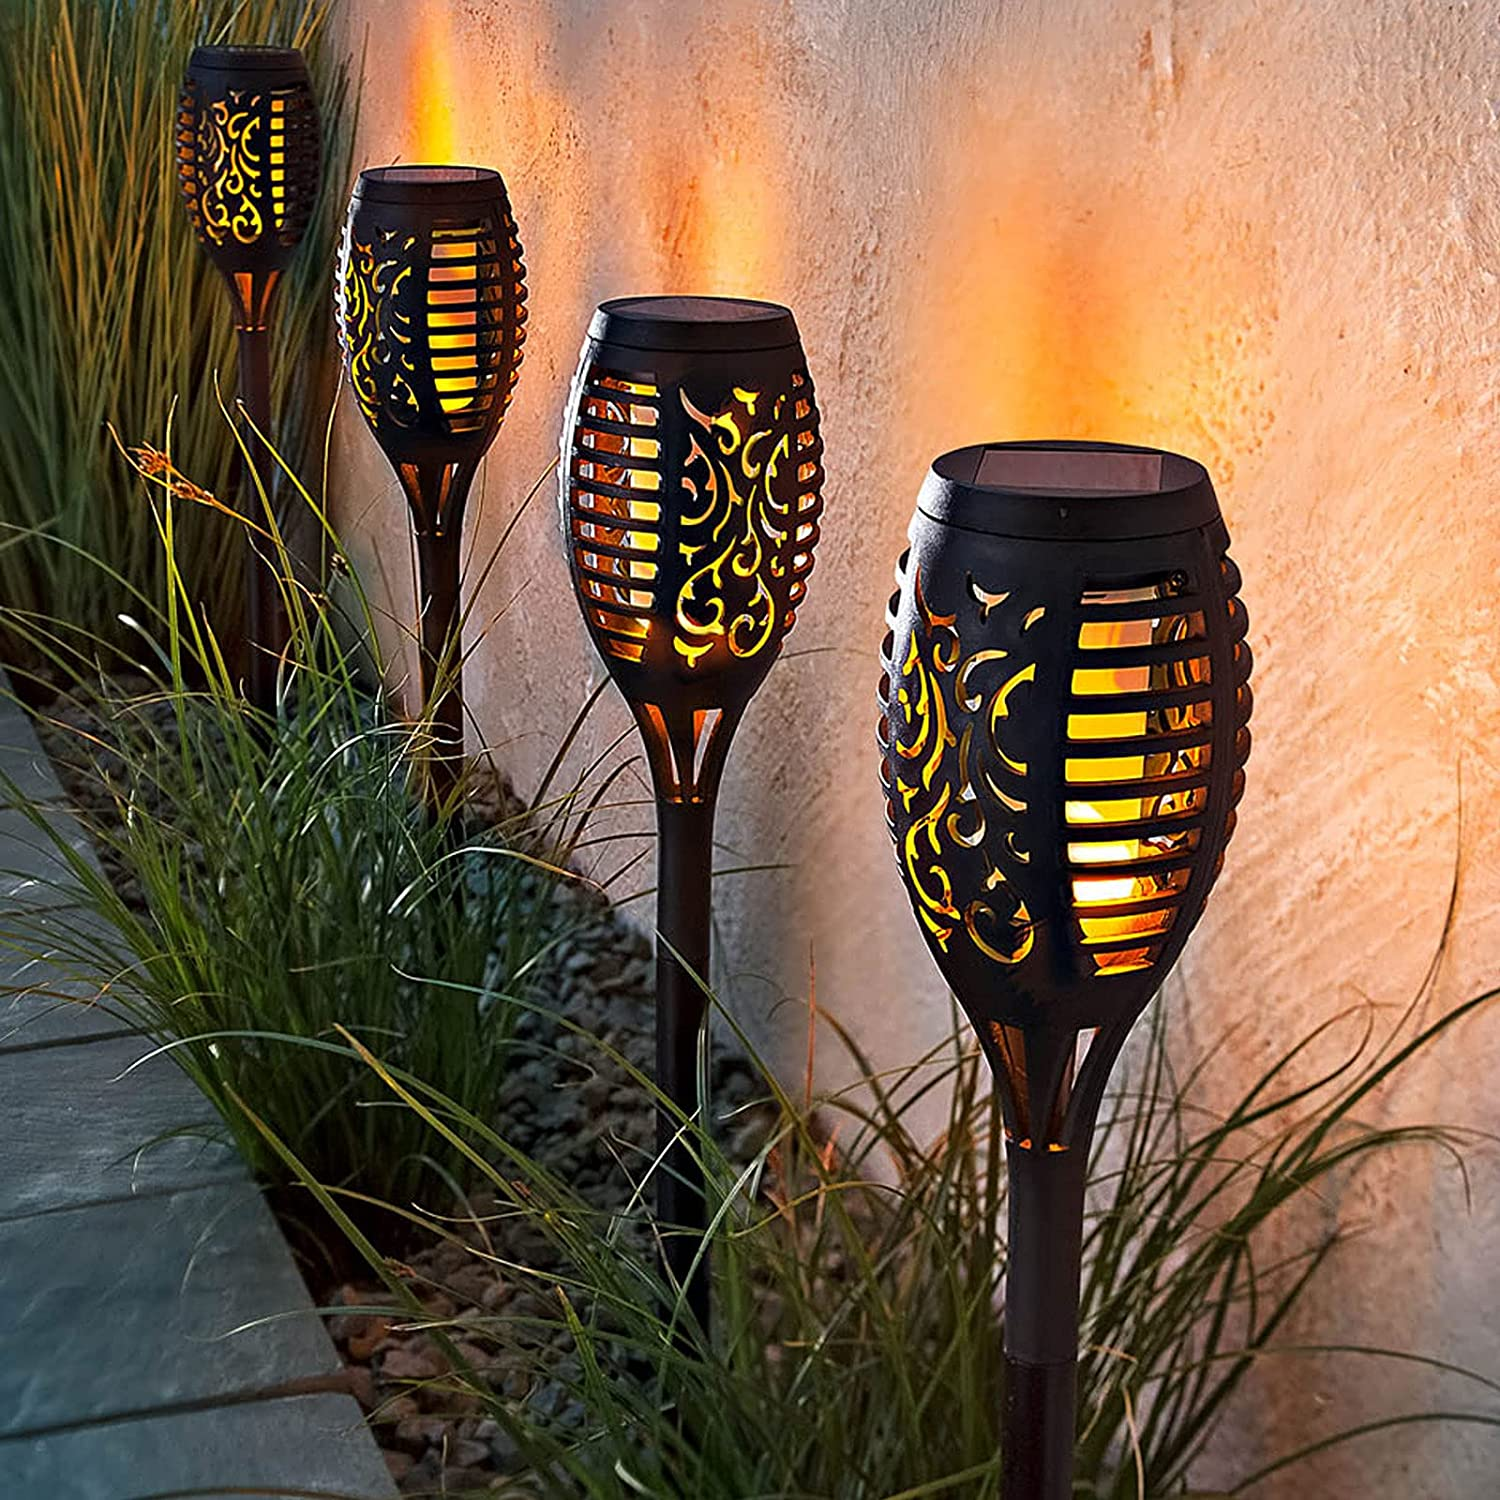 Limited time sale 6PK Mini Solar Outdoor Super special price Torch Wa Flickering Flame Lights Dancing